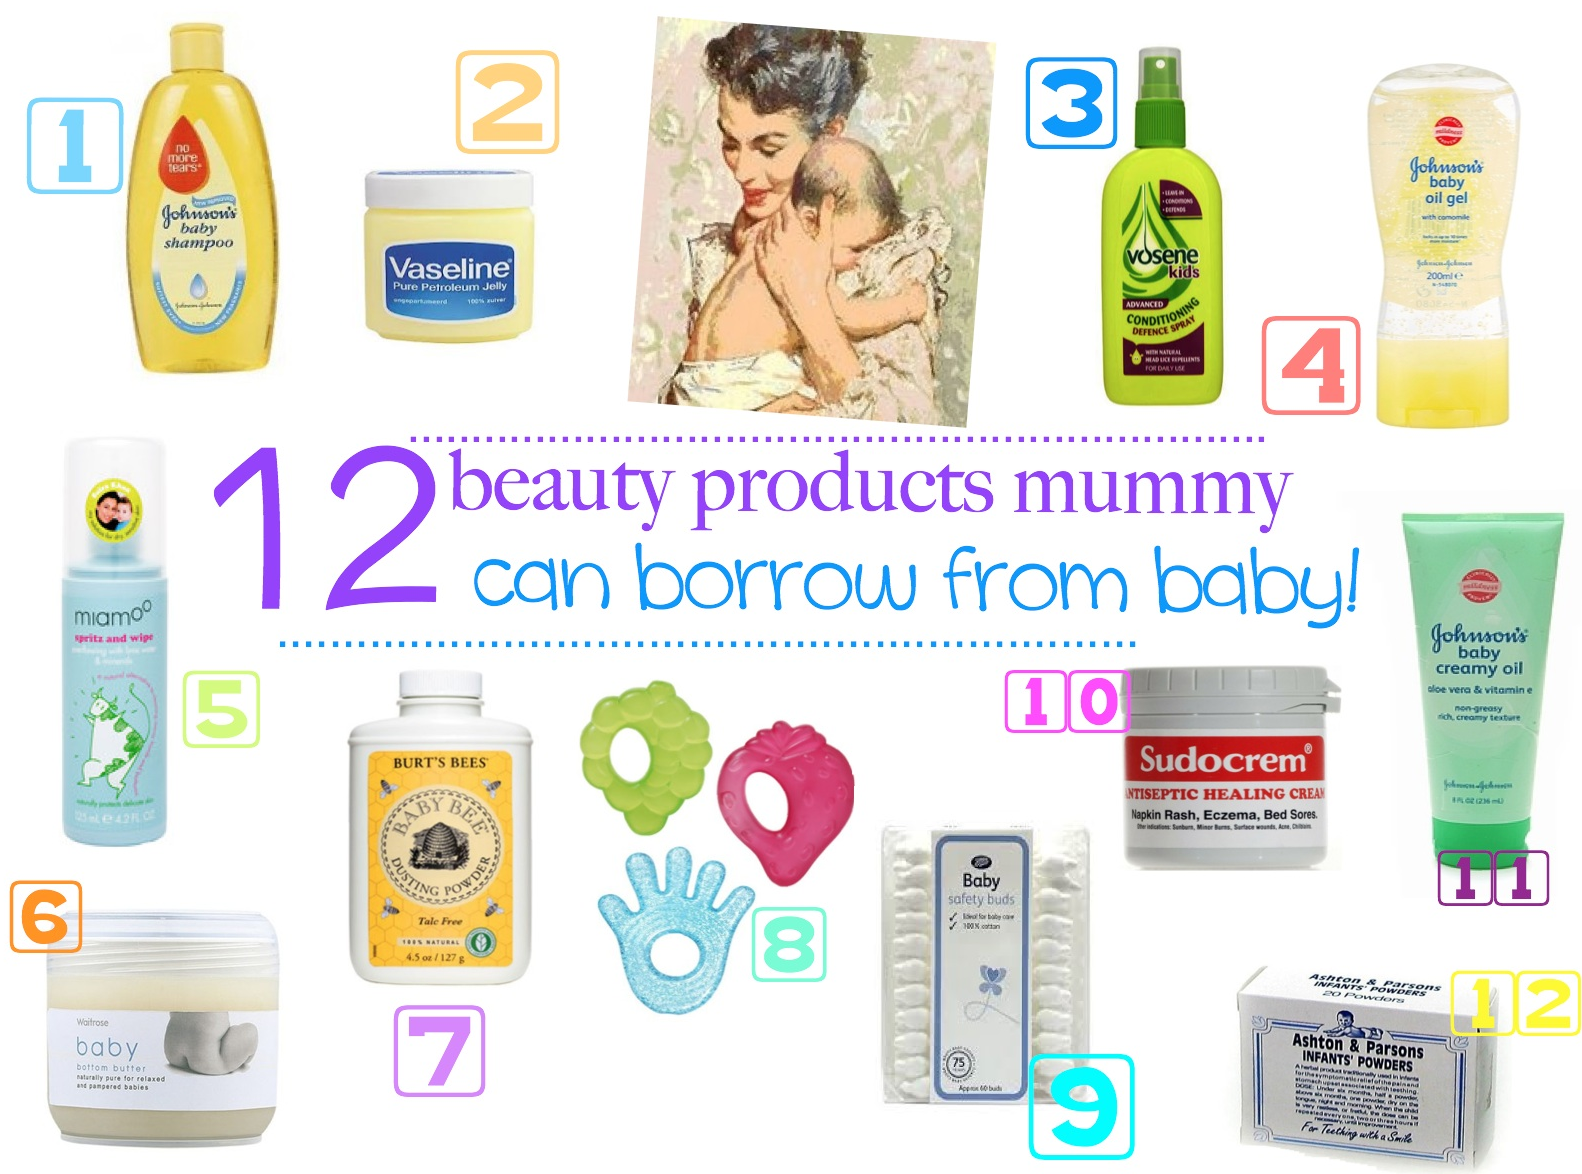 mamasVIB | V. I. BEAUTY: 12 Beauty products that busy mama's can borrow from baby…that REALLY work!, 12 Beauty products that busy mama's can borrow from baby…that really work | baby beauty | mama beauty products | double use products | baby products | mamasVIB | beauty for baby | fast beauty fixes for mums